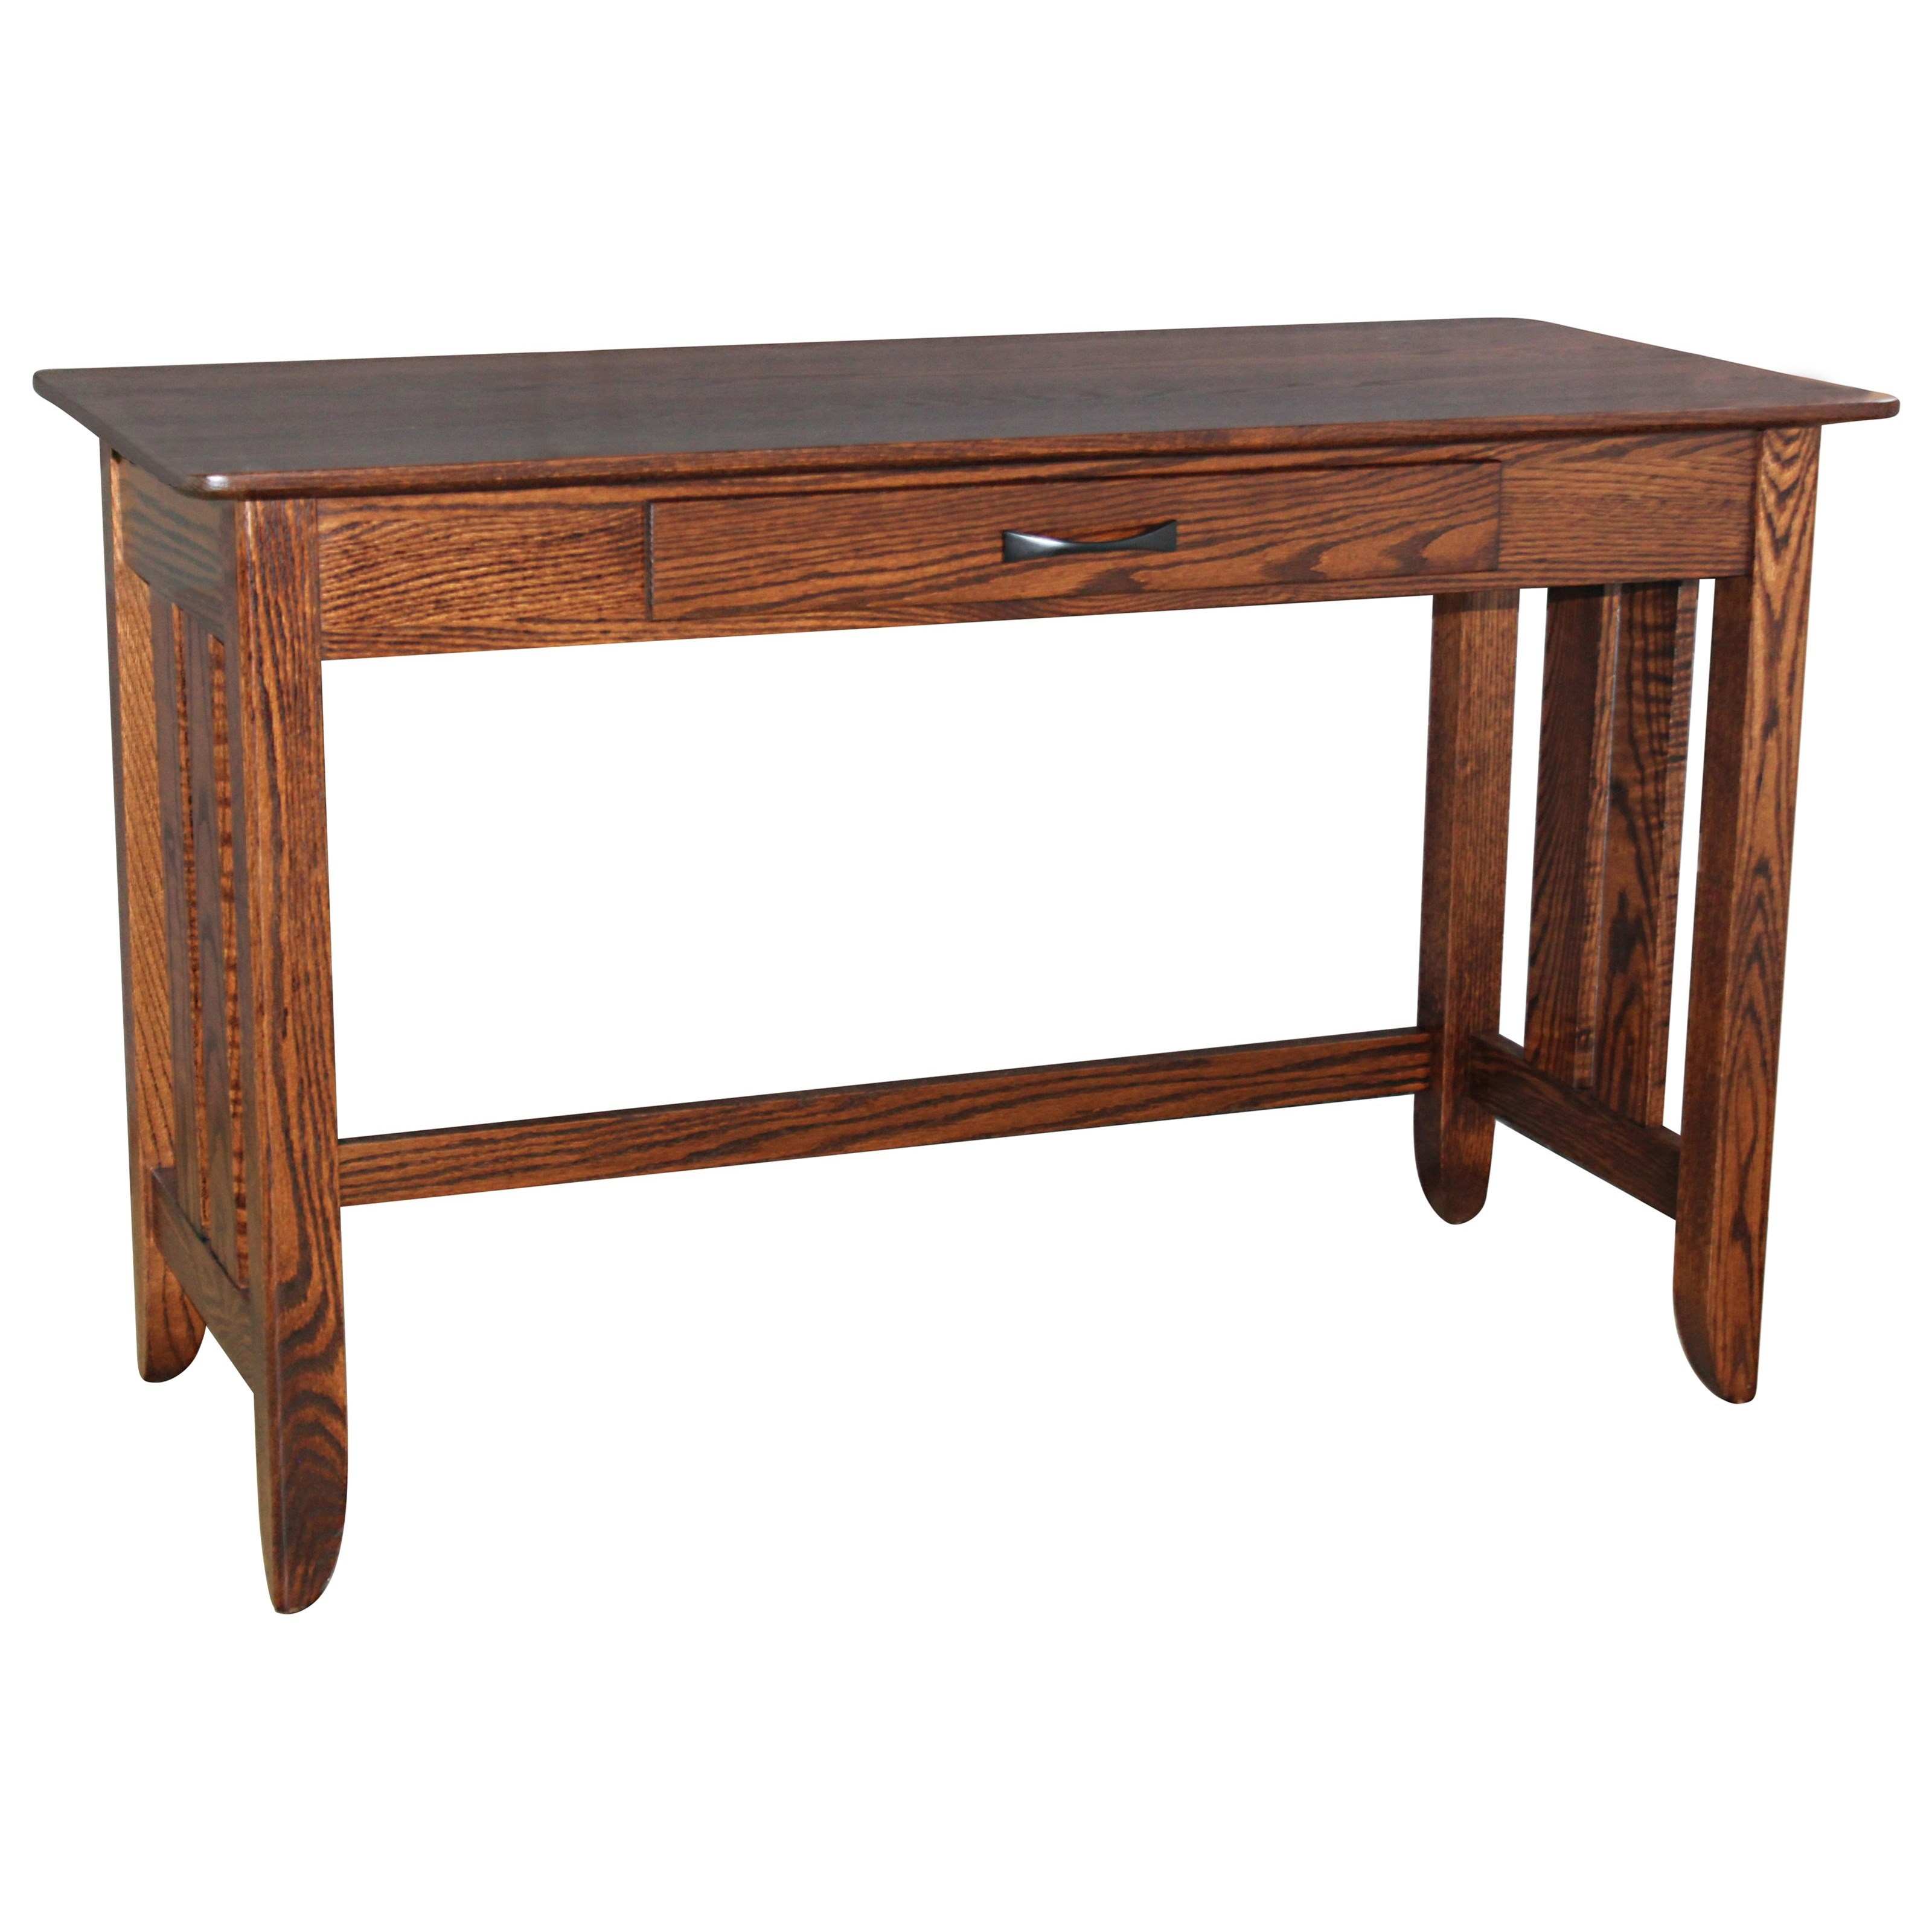 Austin w/ Slats Library Table by Ashery Woodworking at Saugerties Furniture Mart